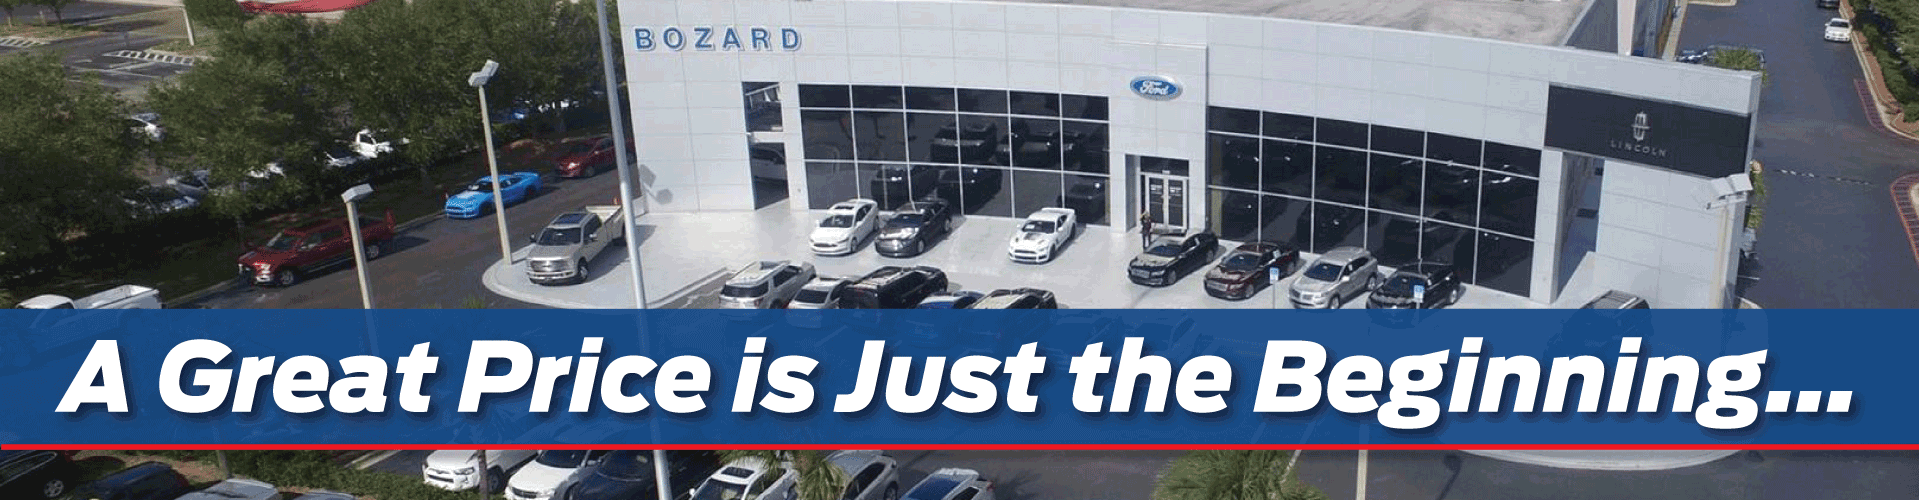 A great price is just the beginning at Bozard Ford Lincoln of St Augustine